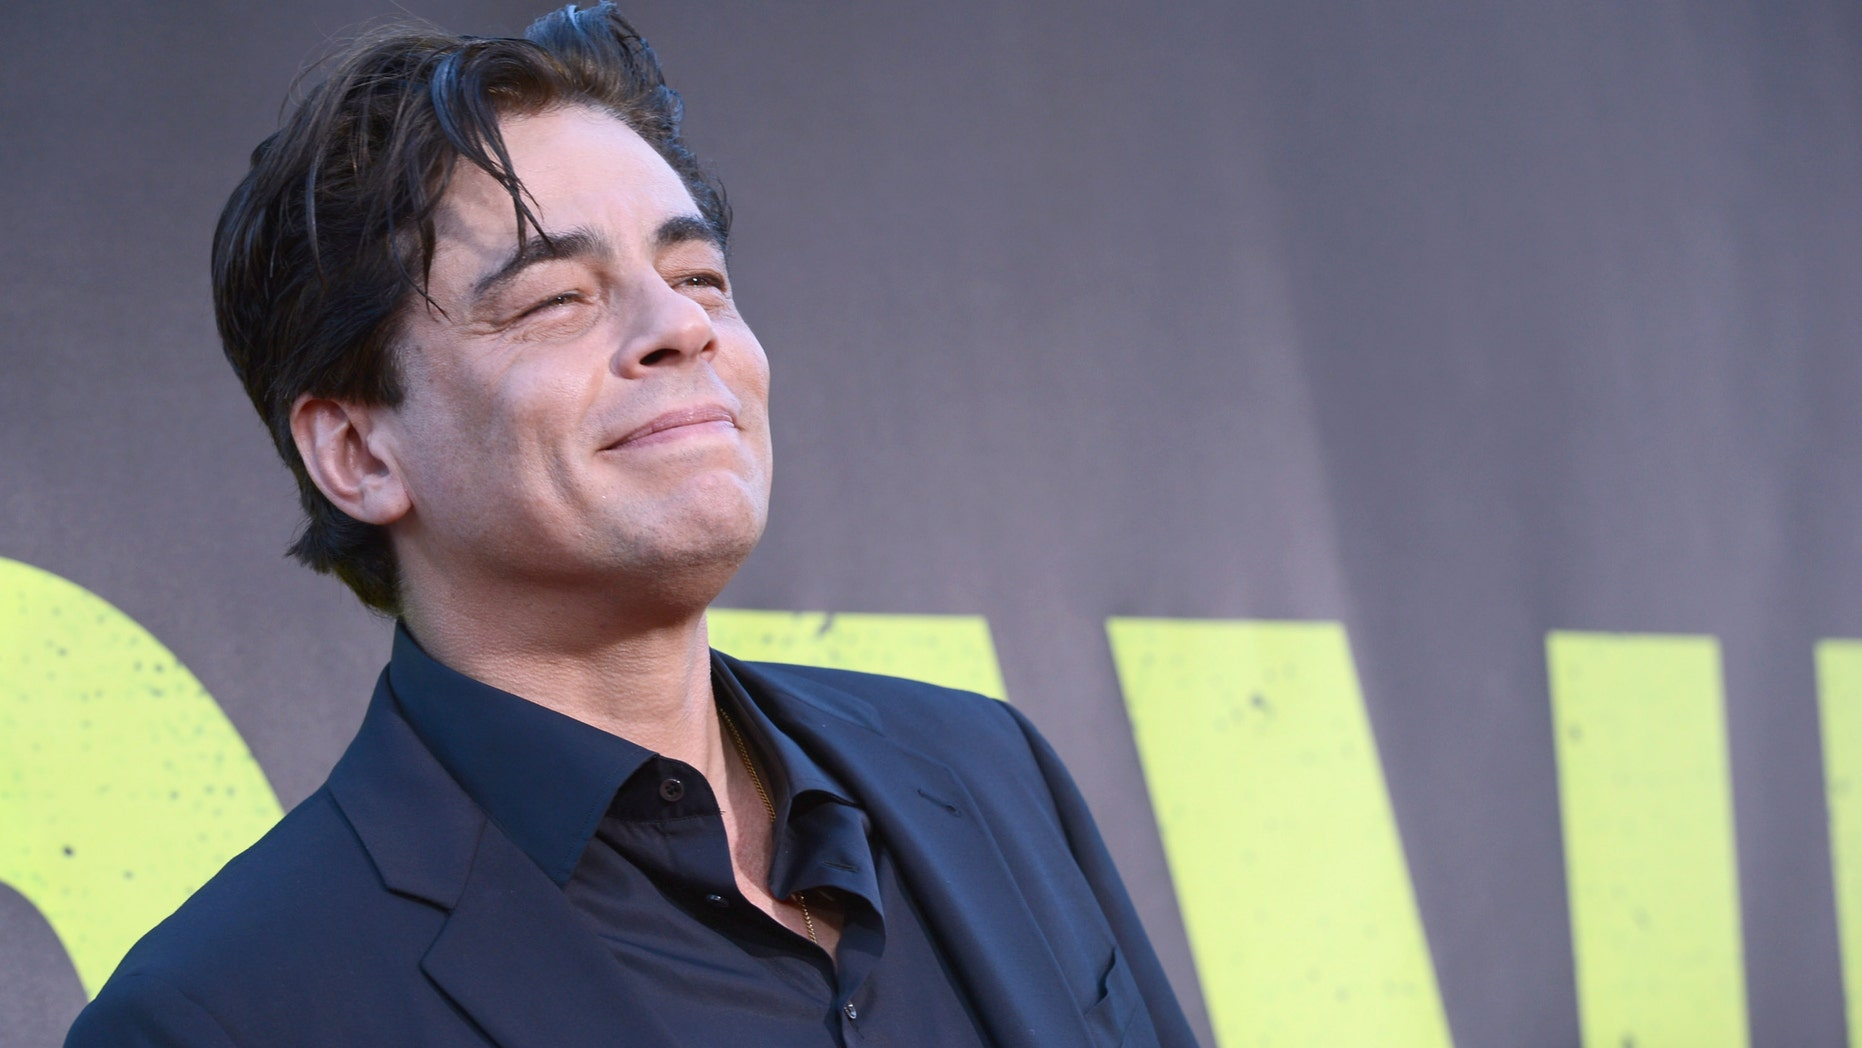 """LOS ANGELES, CA - JUNE 25:  Actor Benicio Del Toro arrives at Premiere of Universal Pictures' """"Savages""""  at Westwood Village on June 25, 2012 in Los Angeles, California.  (Photo by Kevin Winter/Getty Images)"""